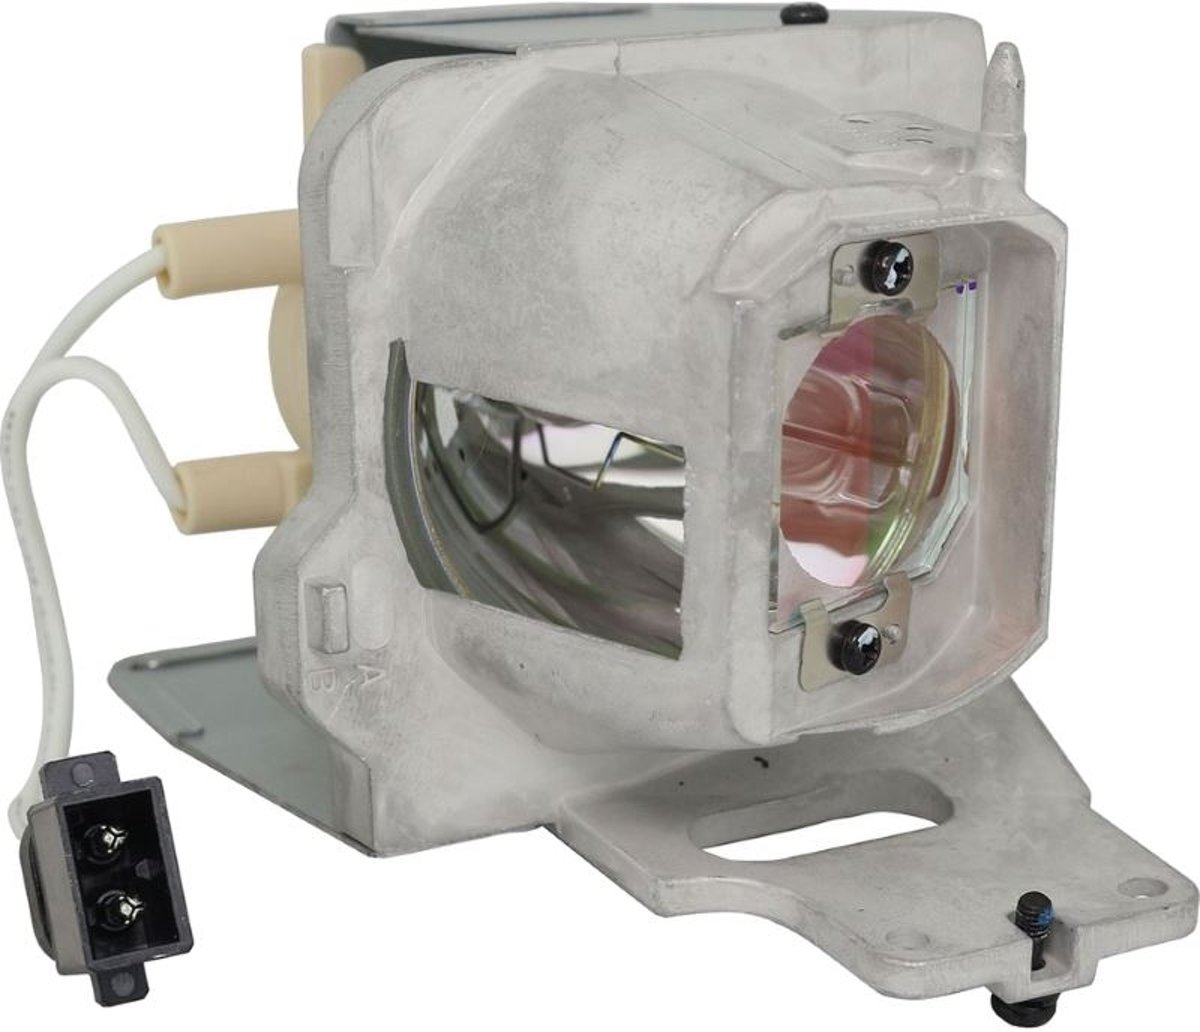 Optoma BL-FP240G / Optoma SP.7AZ01GC01 Projector Lamp (bevat originele UHP lamp)